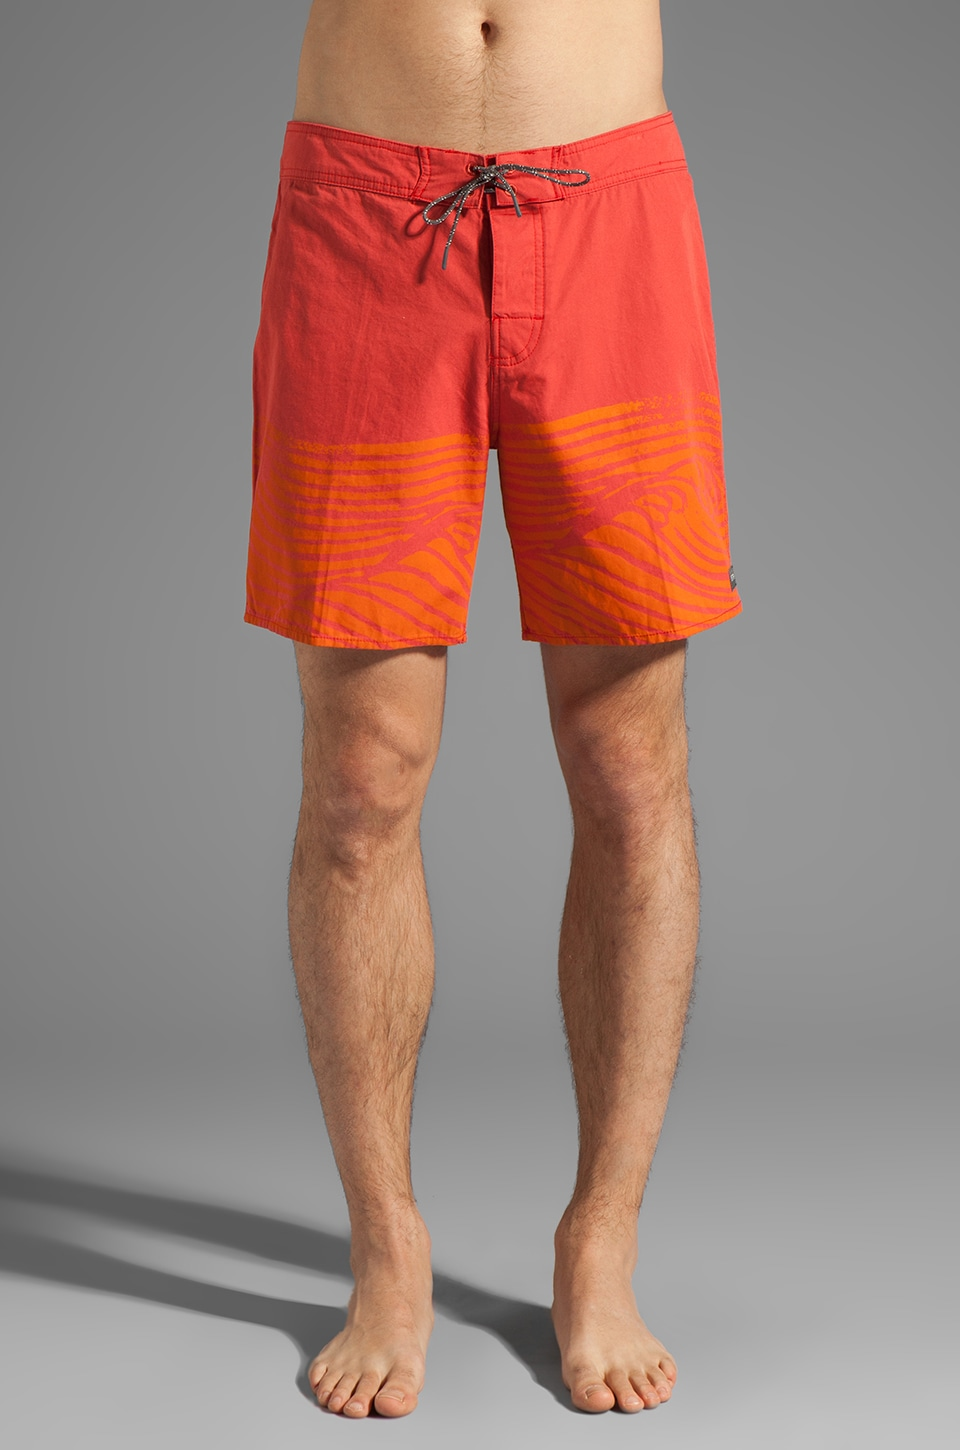 V.S.T.R Bi-Coastal Boardshort in Baked Apple